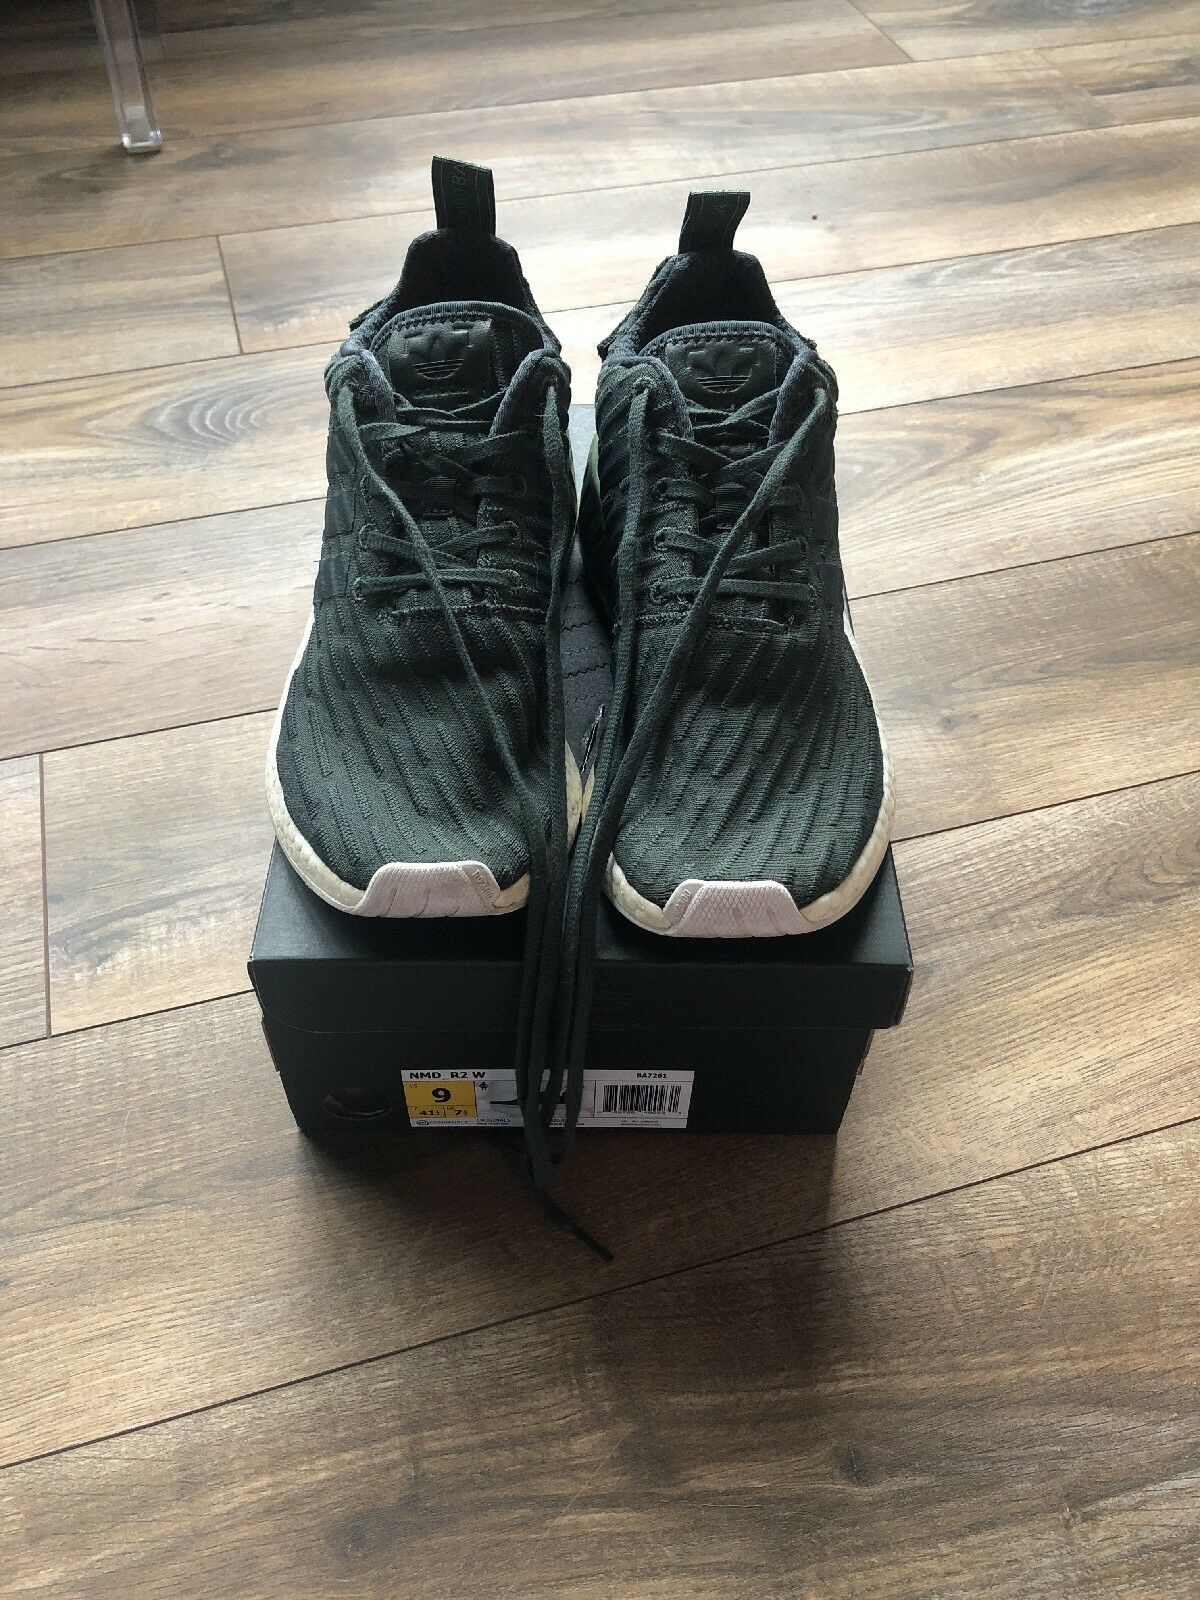 Adidas Originals NMD_R2 Women's Sneakers Trainers Size 9 Utility Ivy Trace Green